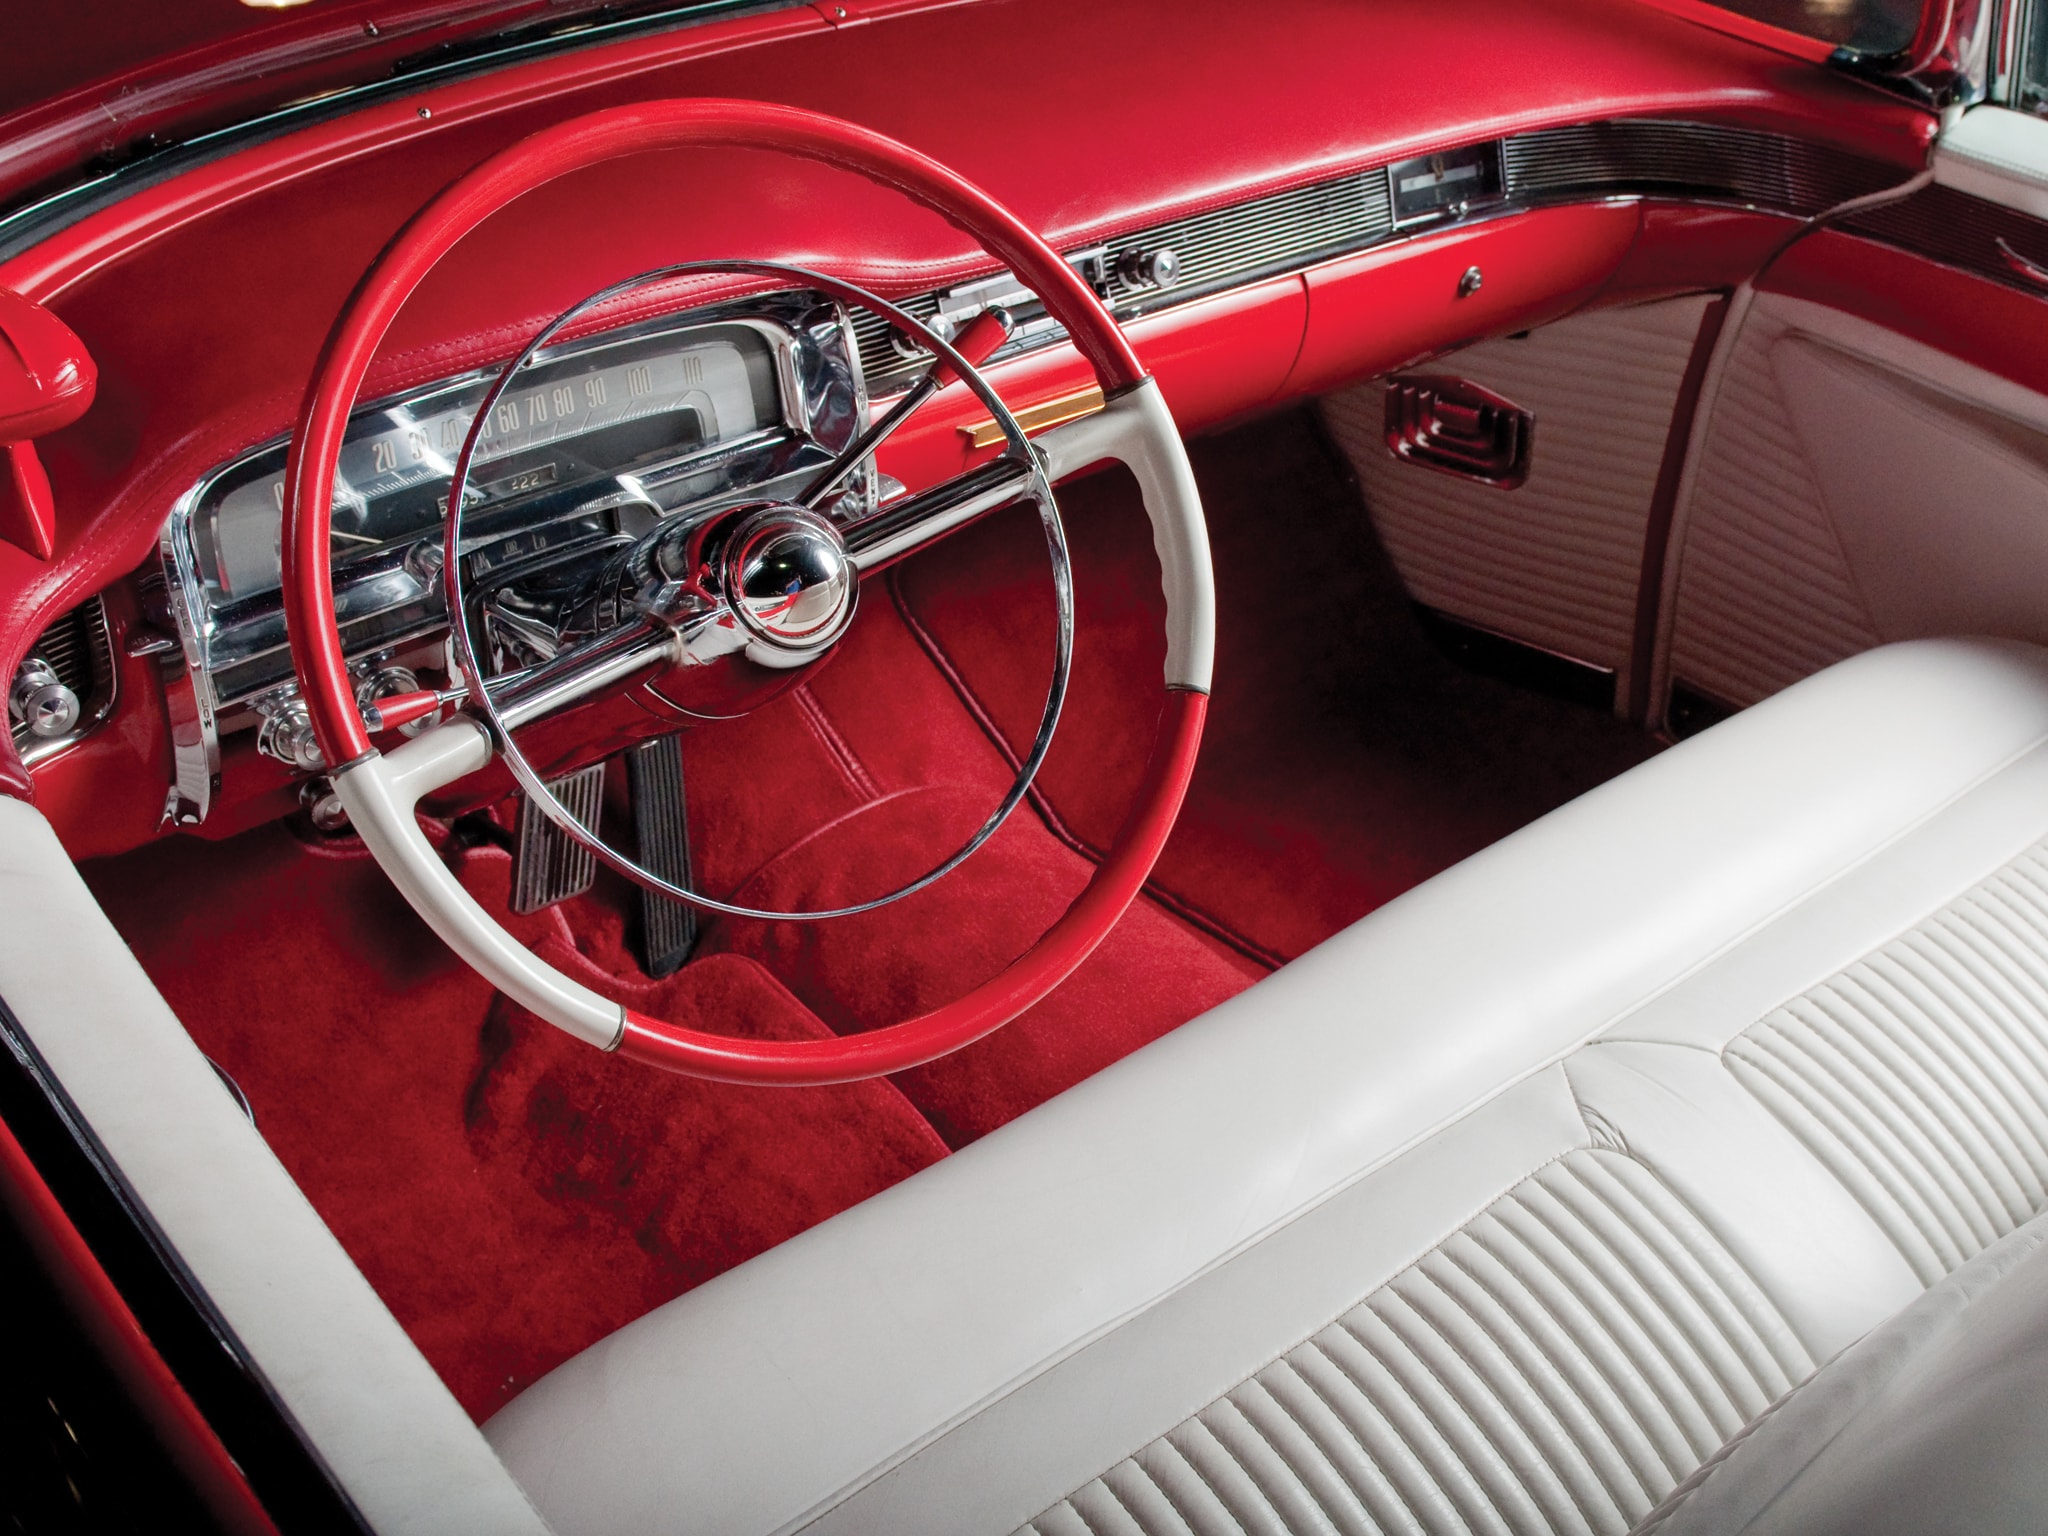 1954 Cadillac Eldorado Full hd wallpapers